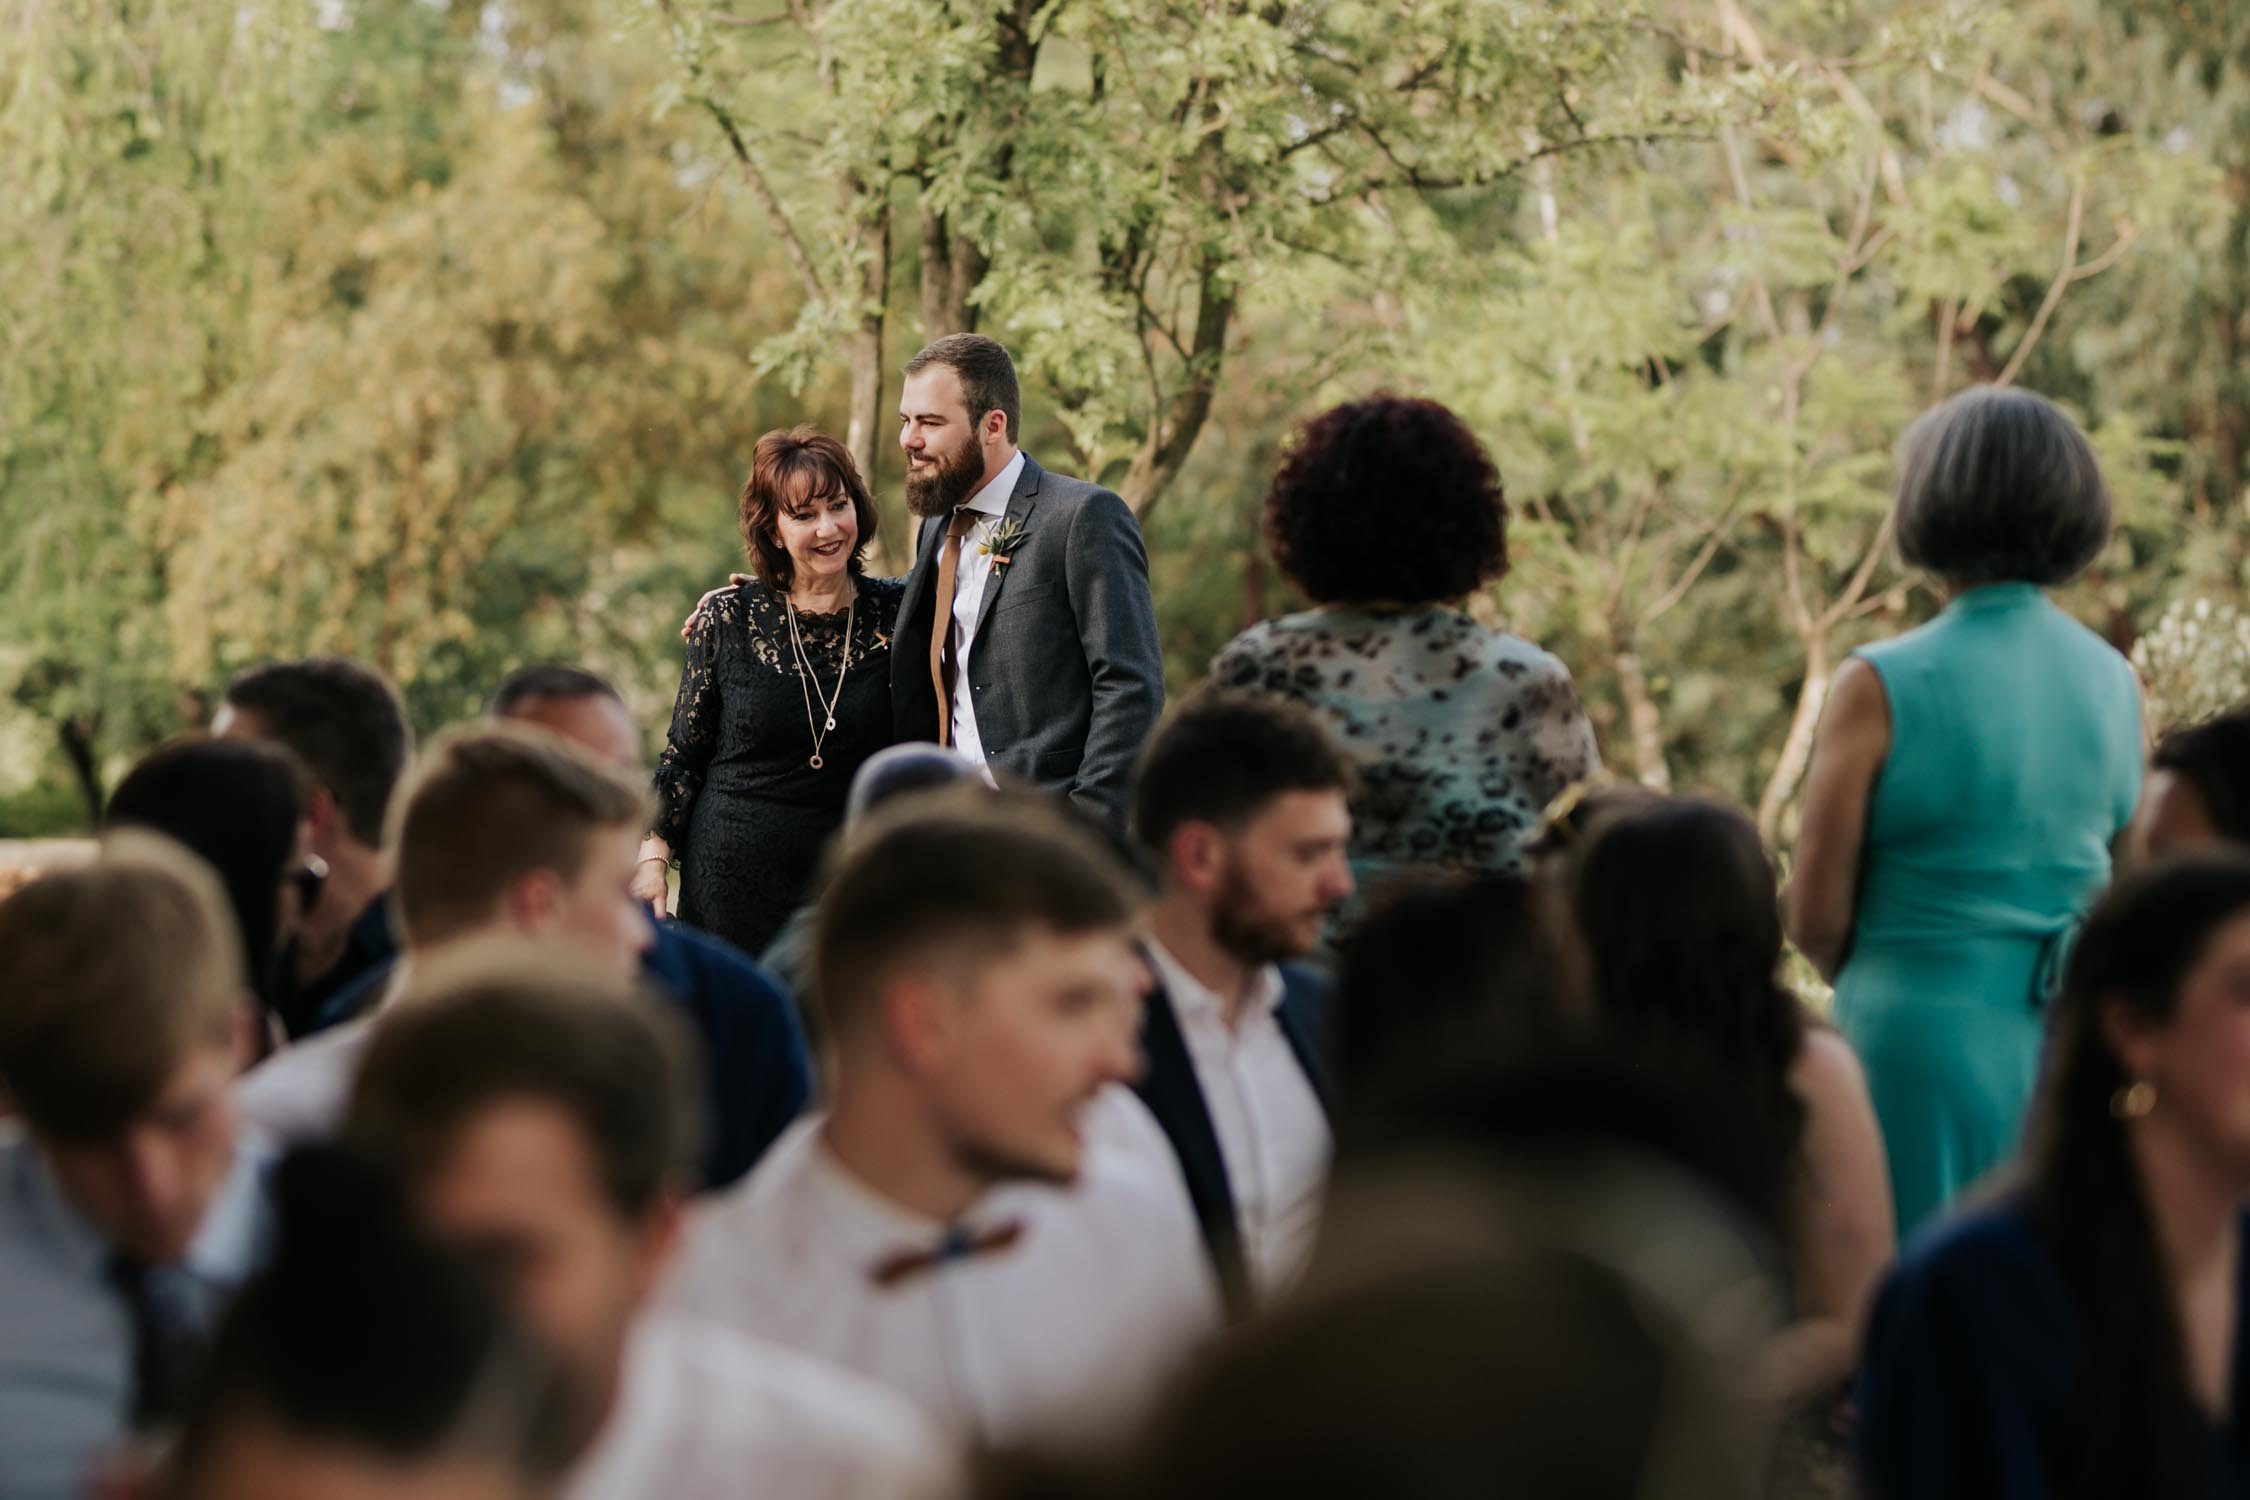 Photo journalistic moment of groom greeting his mother in law at forest wedding ceremony